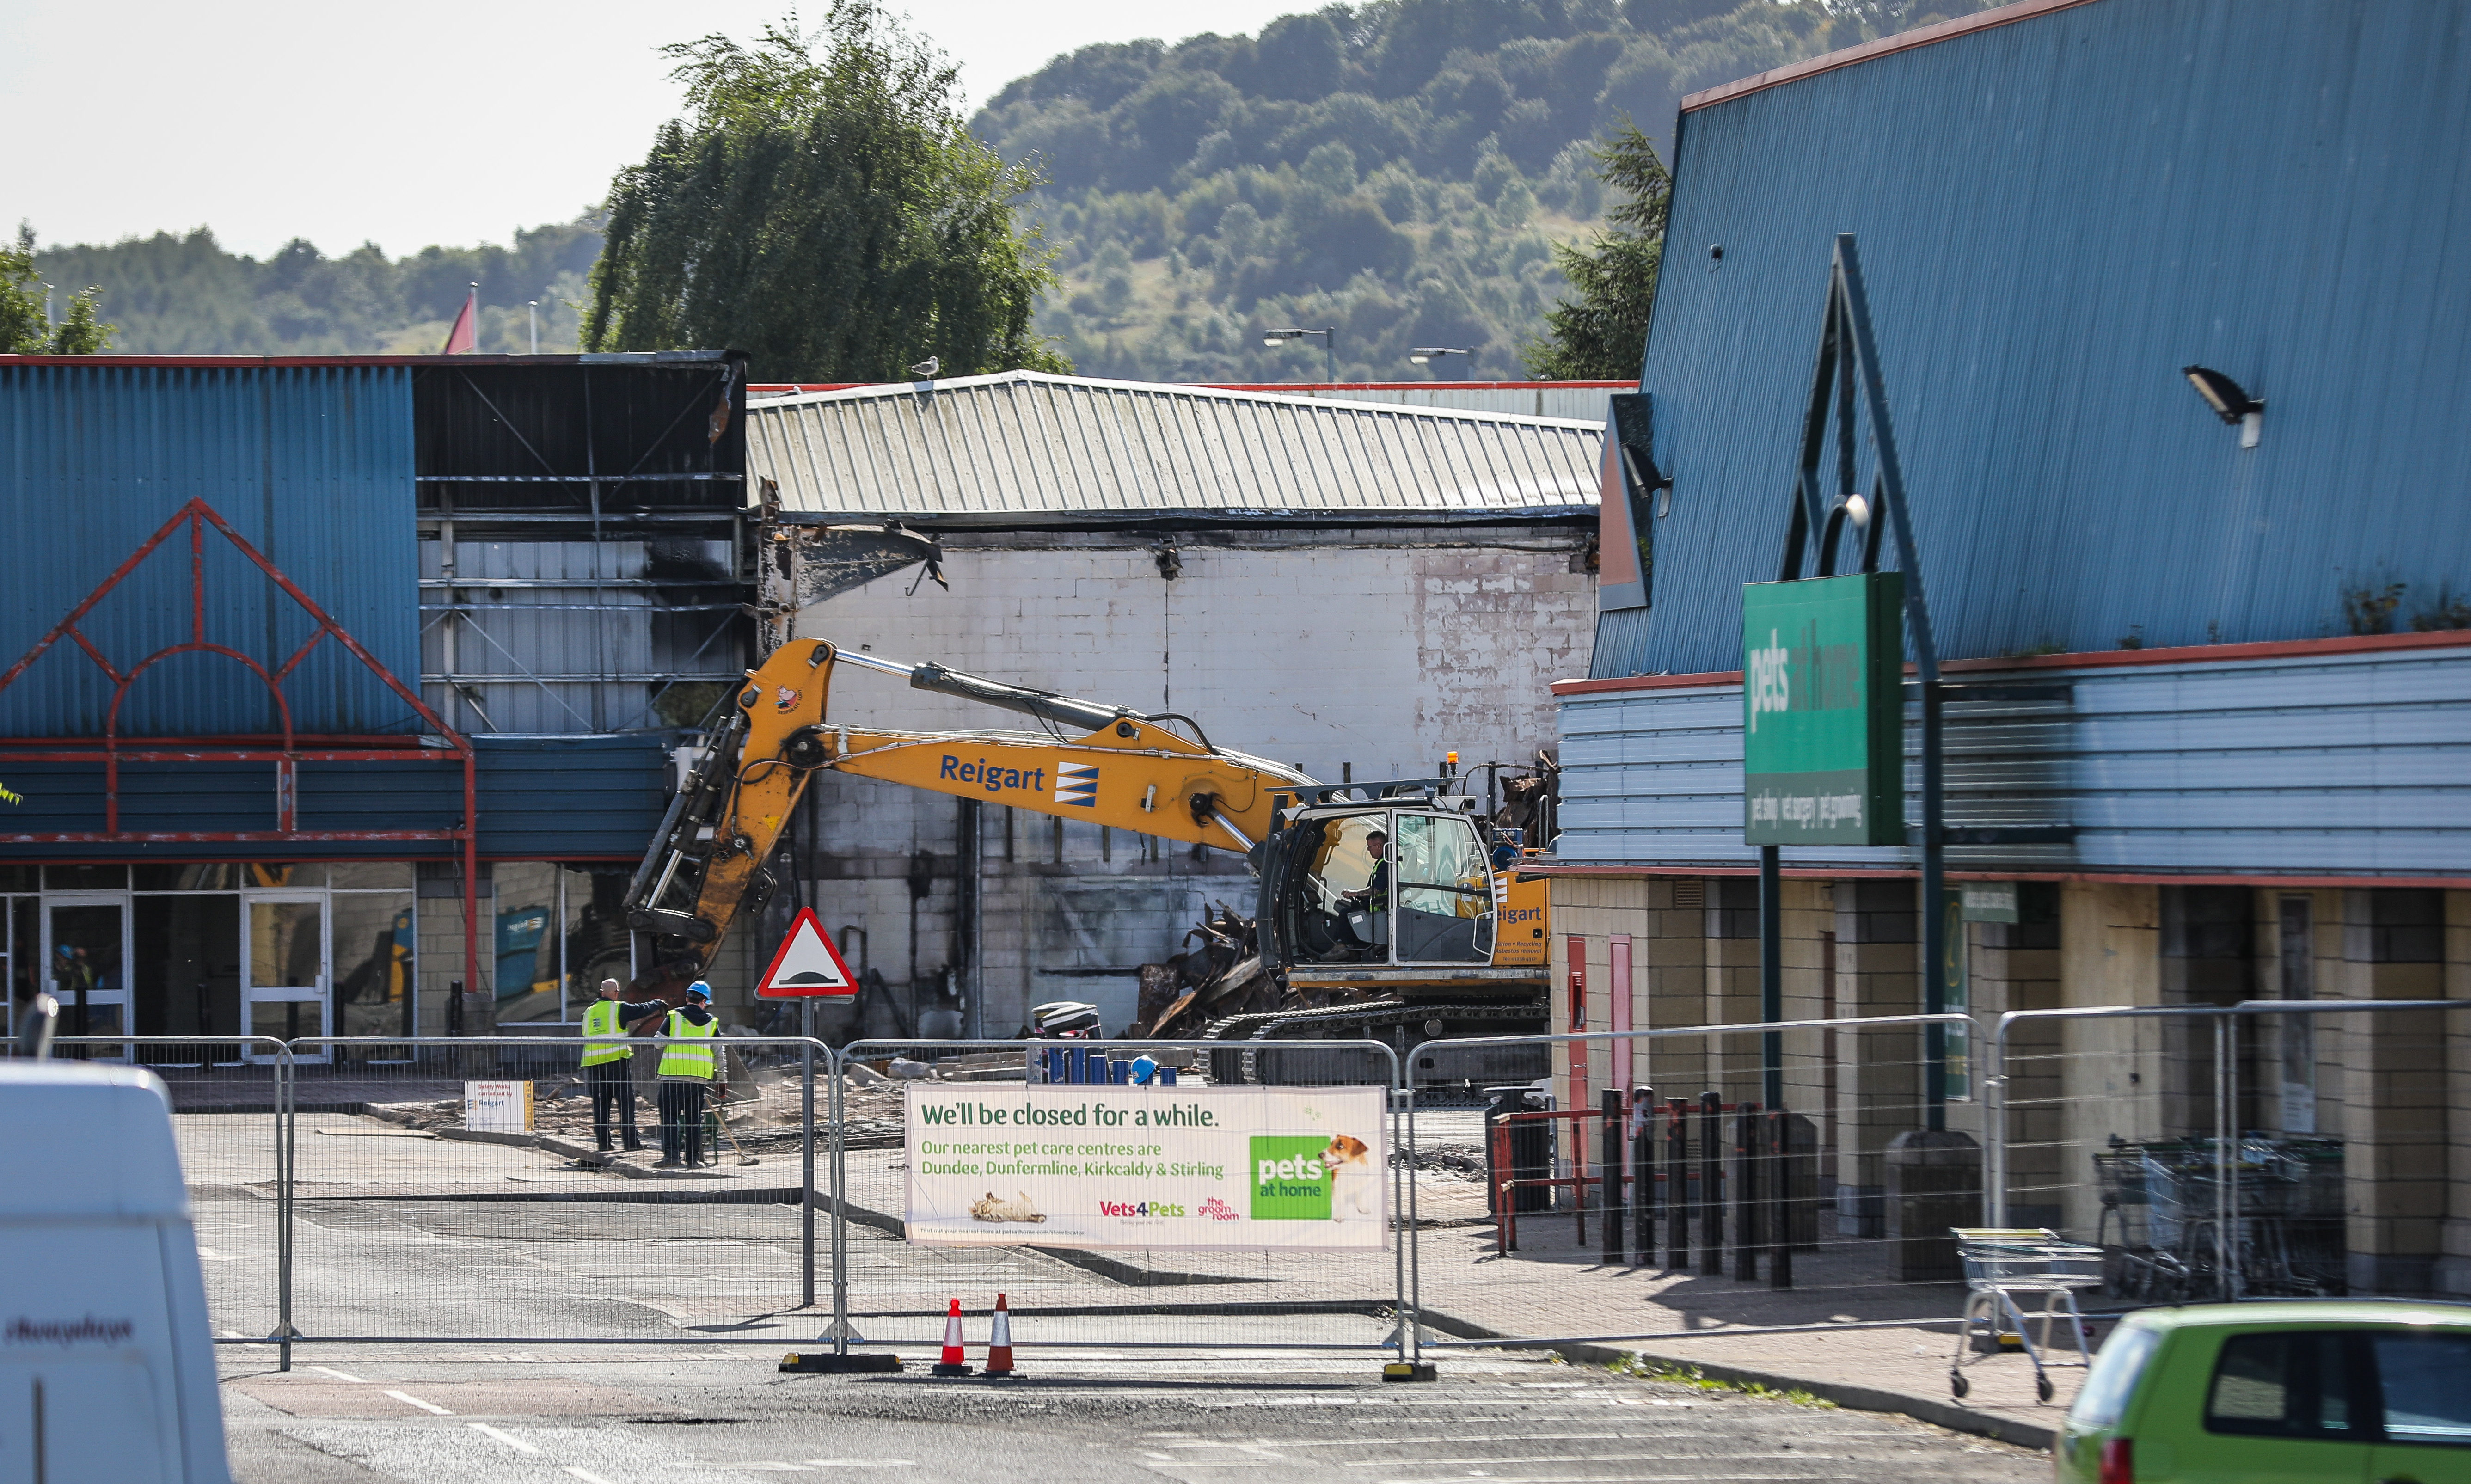 Bulldozers level the site of the B&M building, after last month's fire